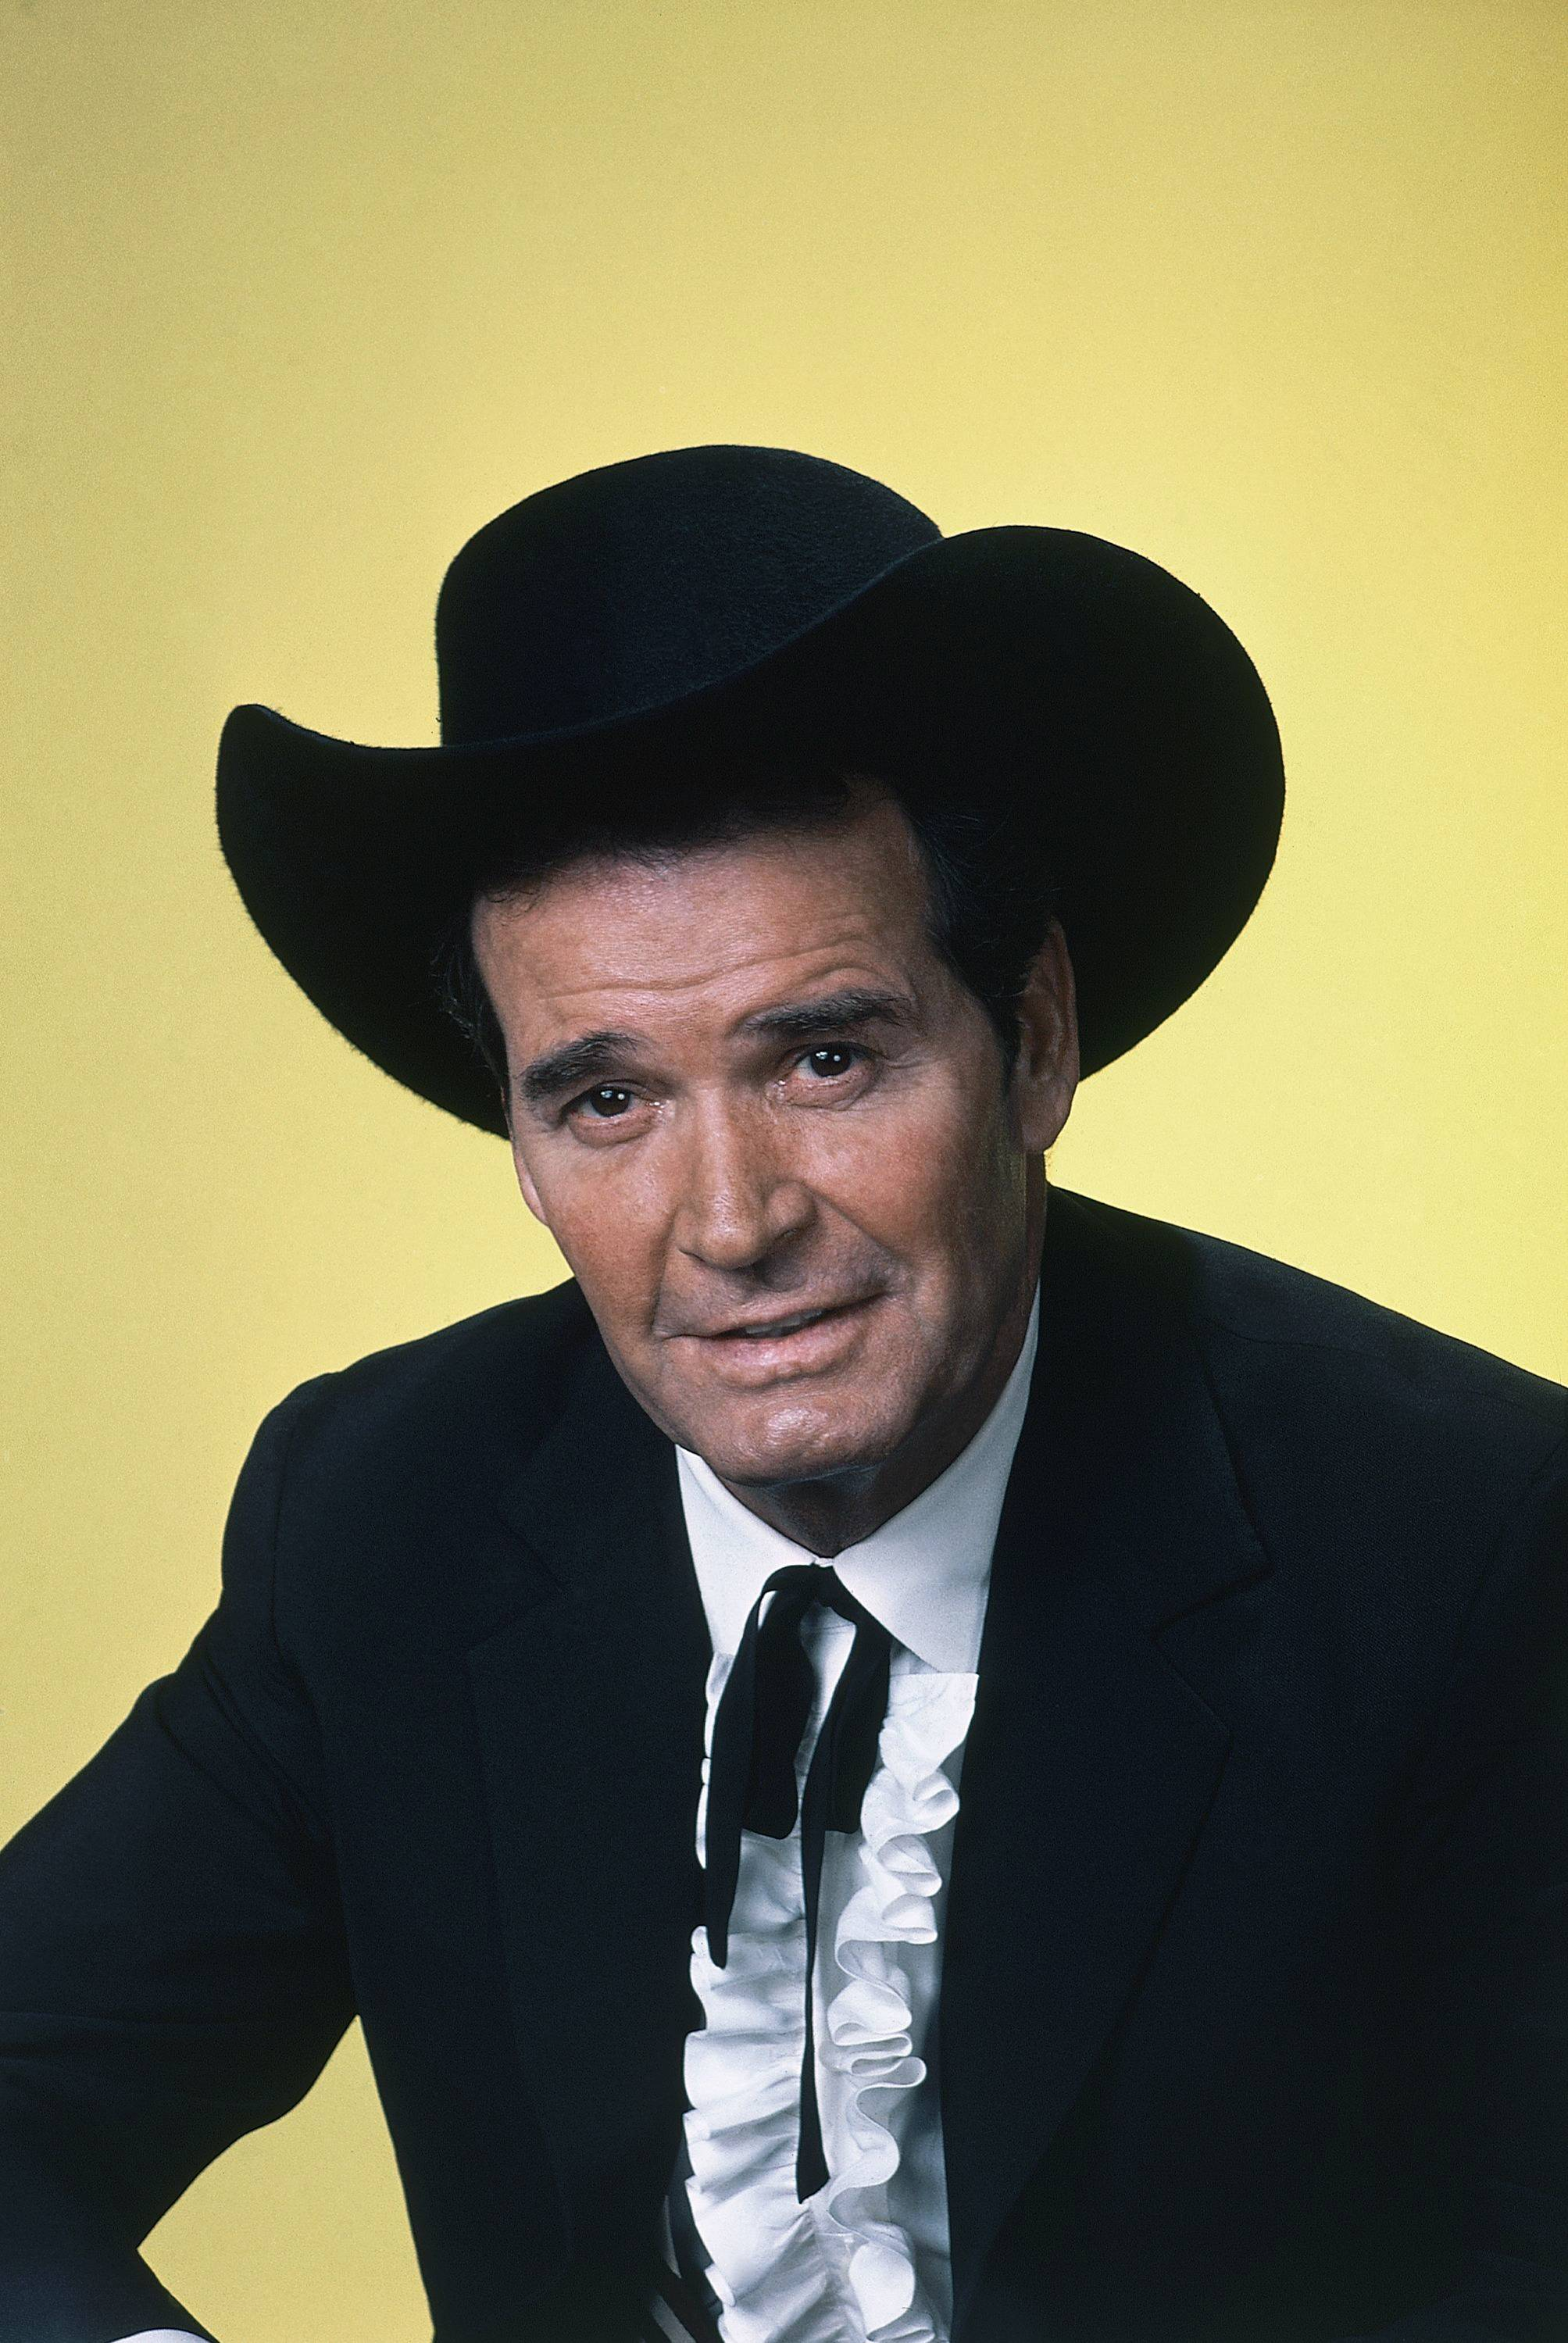 "Actor James Garner is shown in character in this April 7, 1982 file photo. Actor James Garner, wisecracking star of TV's ""Maverick"" who went on to a long career on both small and big screen, died Saturday July 19, 2014 according to Los angeles police. He was 86."